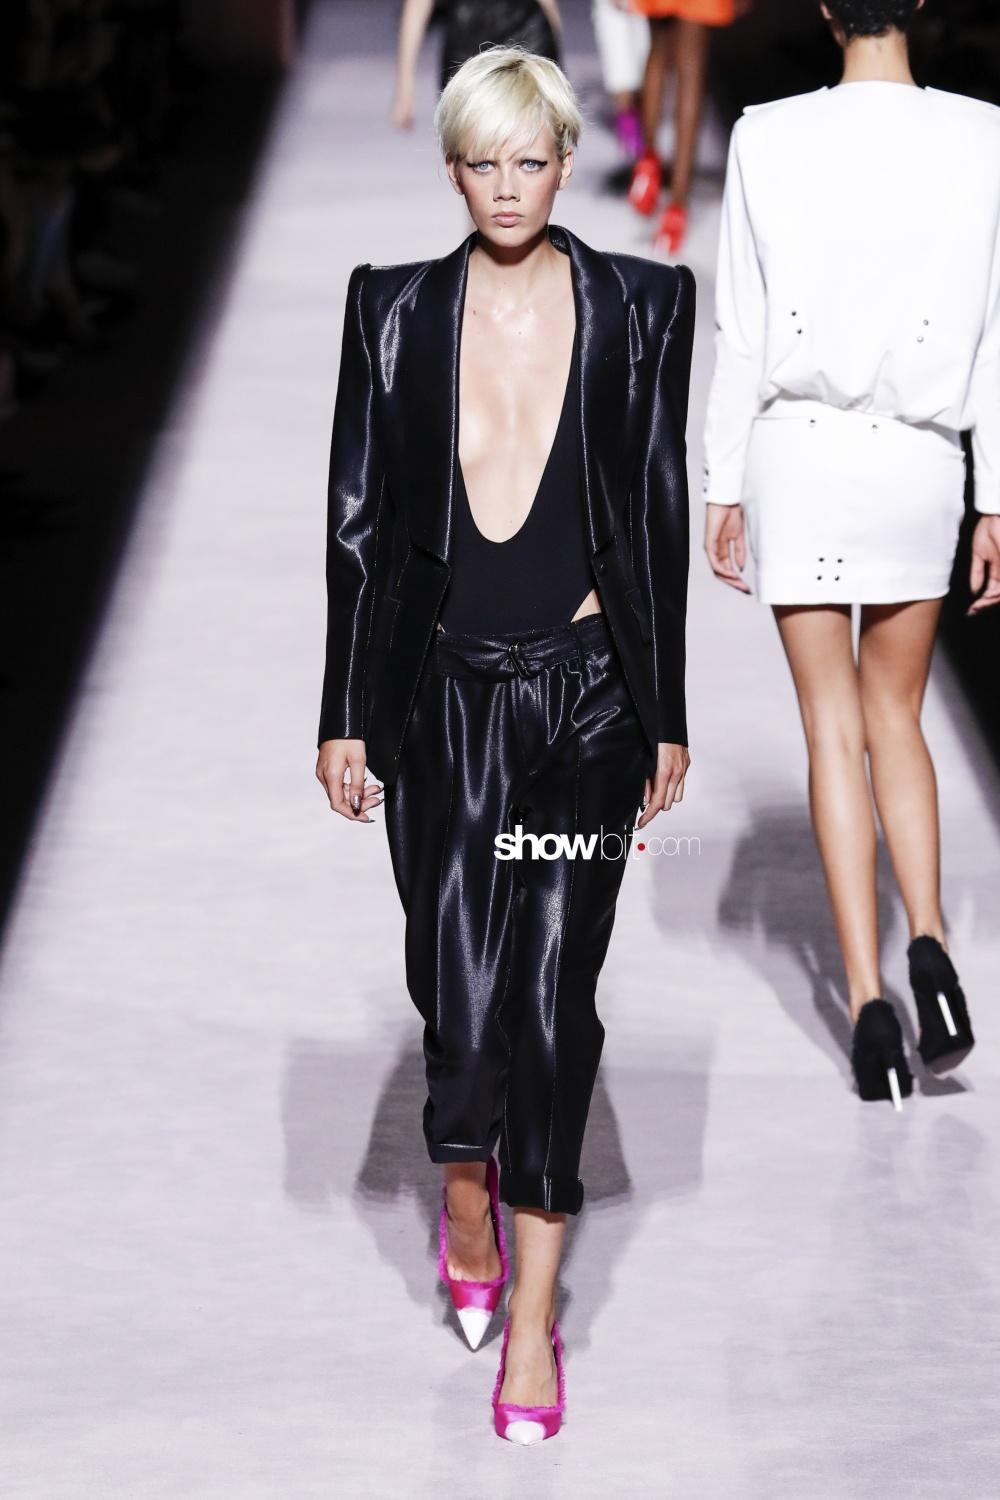 75a45b6c44 New York Fashion Week  Tom Ford s Women Spring Summer 2018 ...